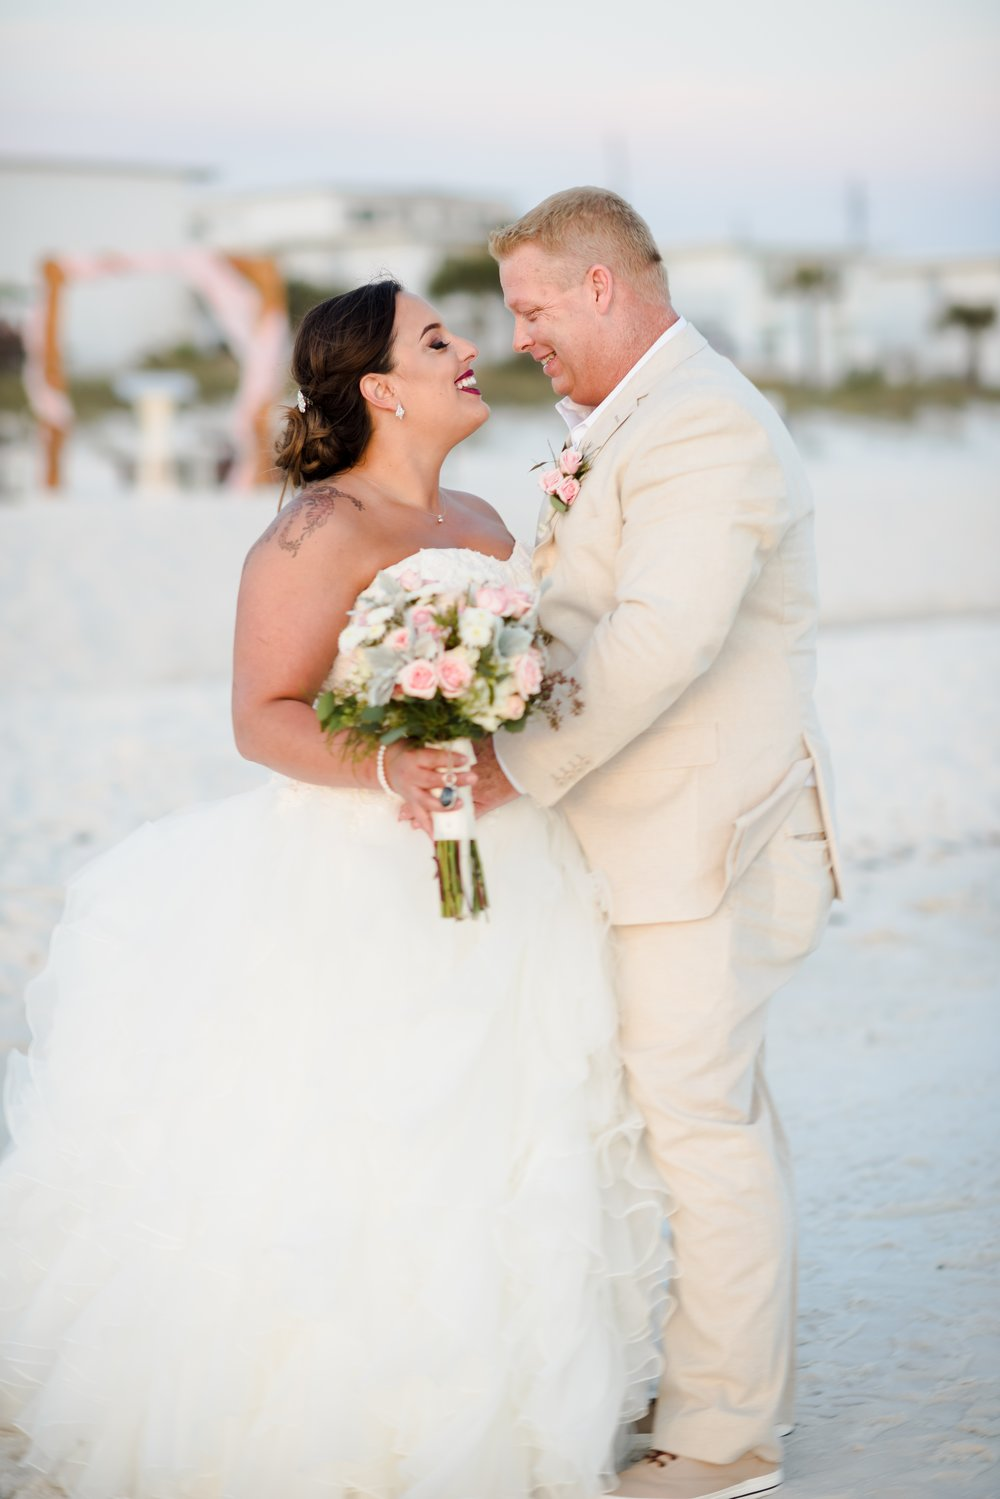 florida-wedding-photographer-kiersten-grant-88.jpg